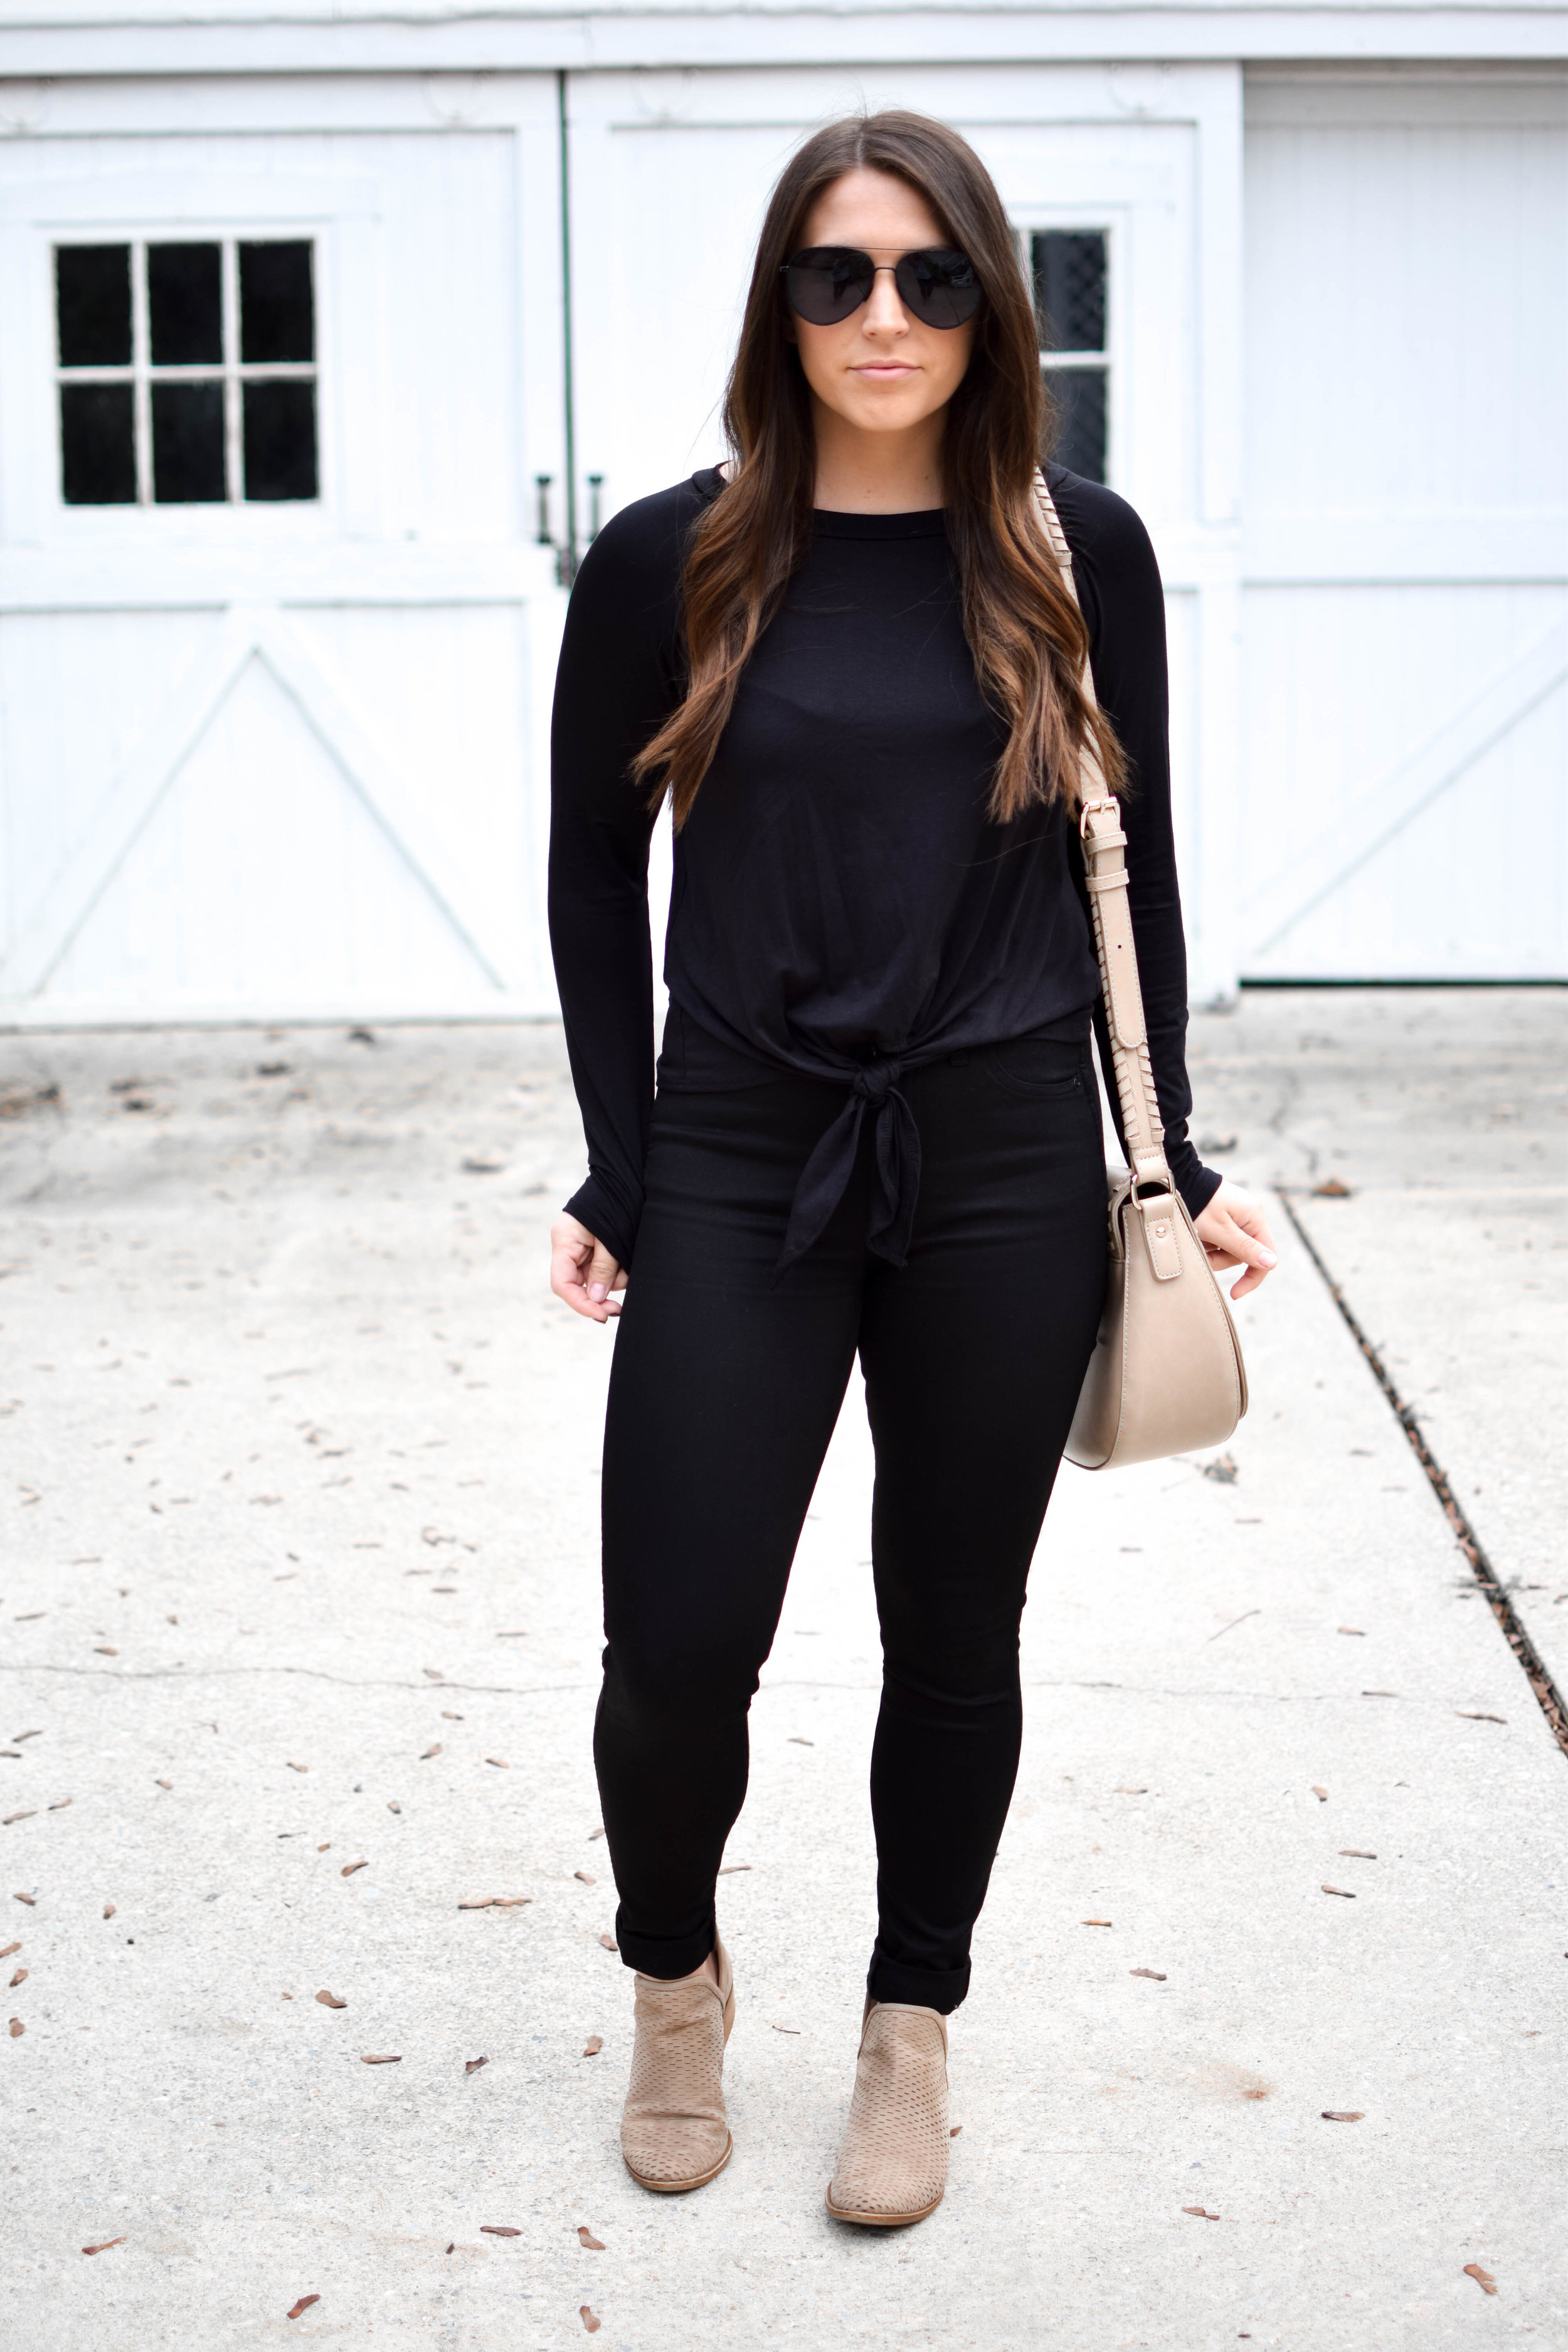 fall fashion / fall outfit idea / fall outfit inspiration / all black outfit for fall